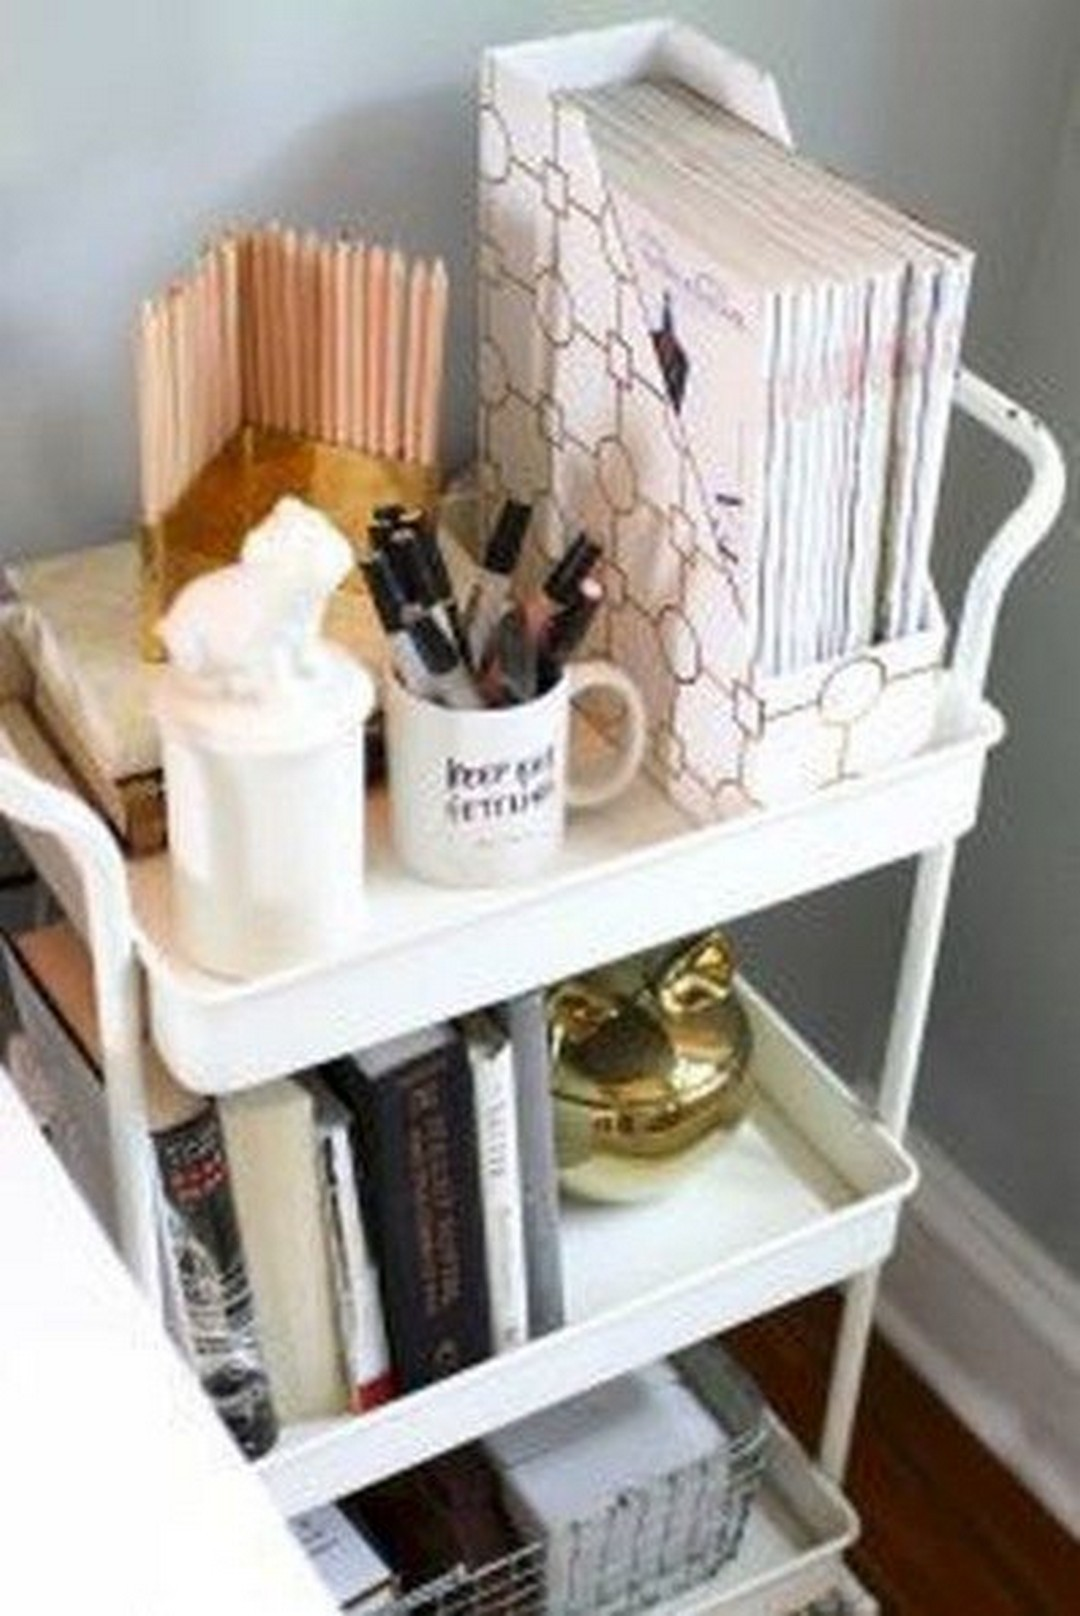 30 Finest Small Apartment Organization Ideas Are So Inspire Page 29 Of 36